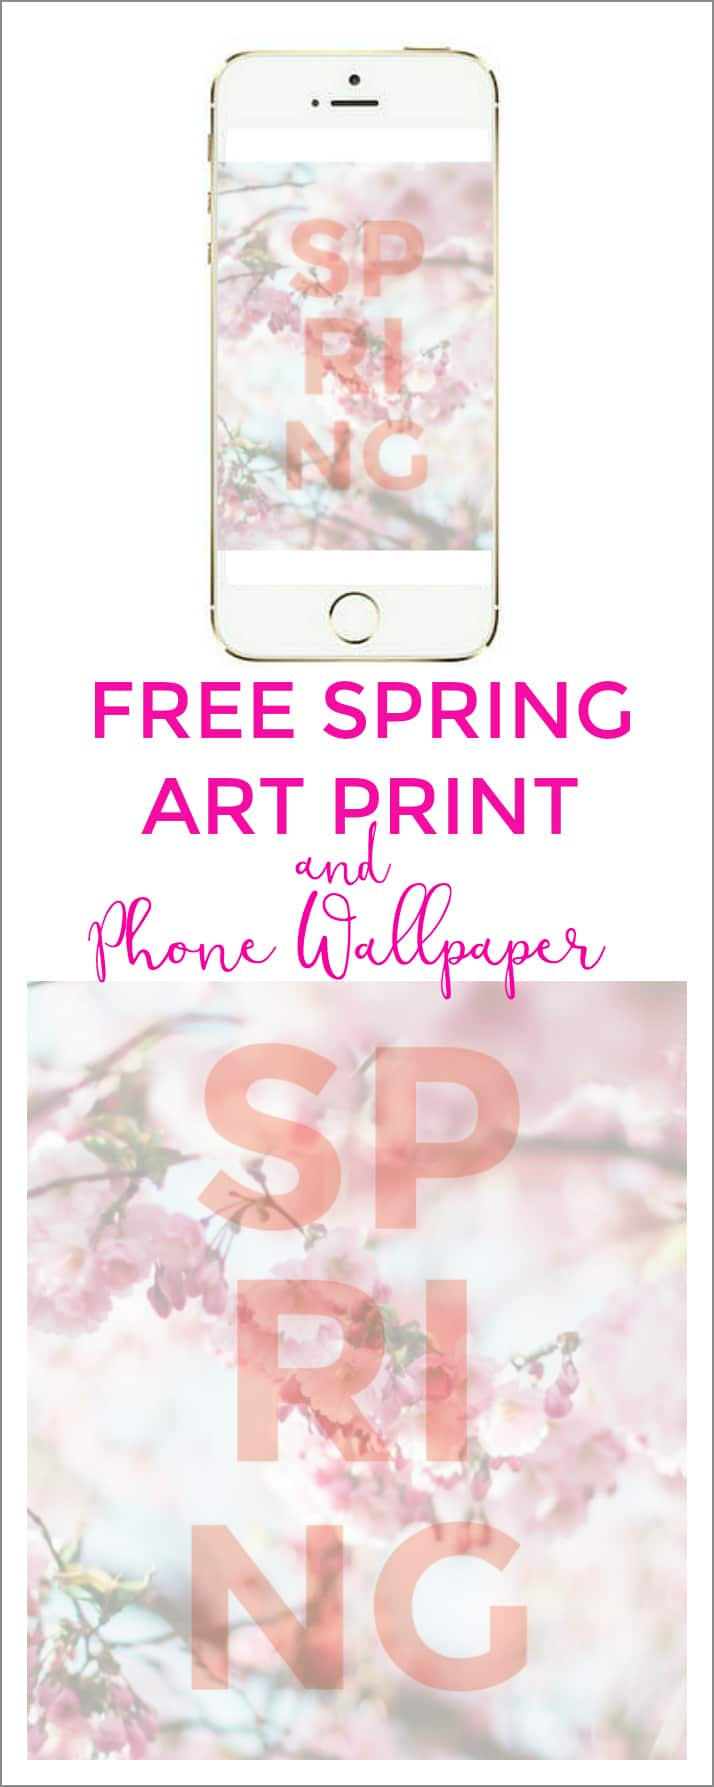 FREE Spring floral art print and phone wallpaper! You can print it and frame it for your art gallery wall and also use it for your phone and iPad wallpaper!